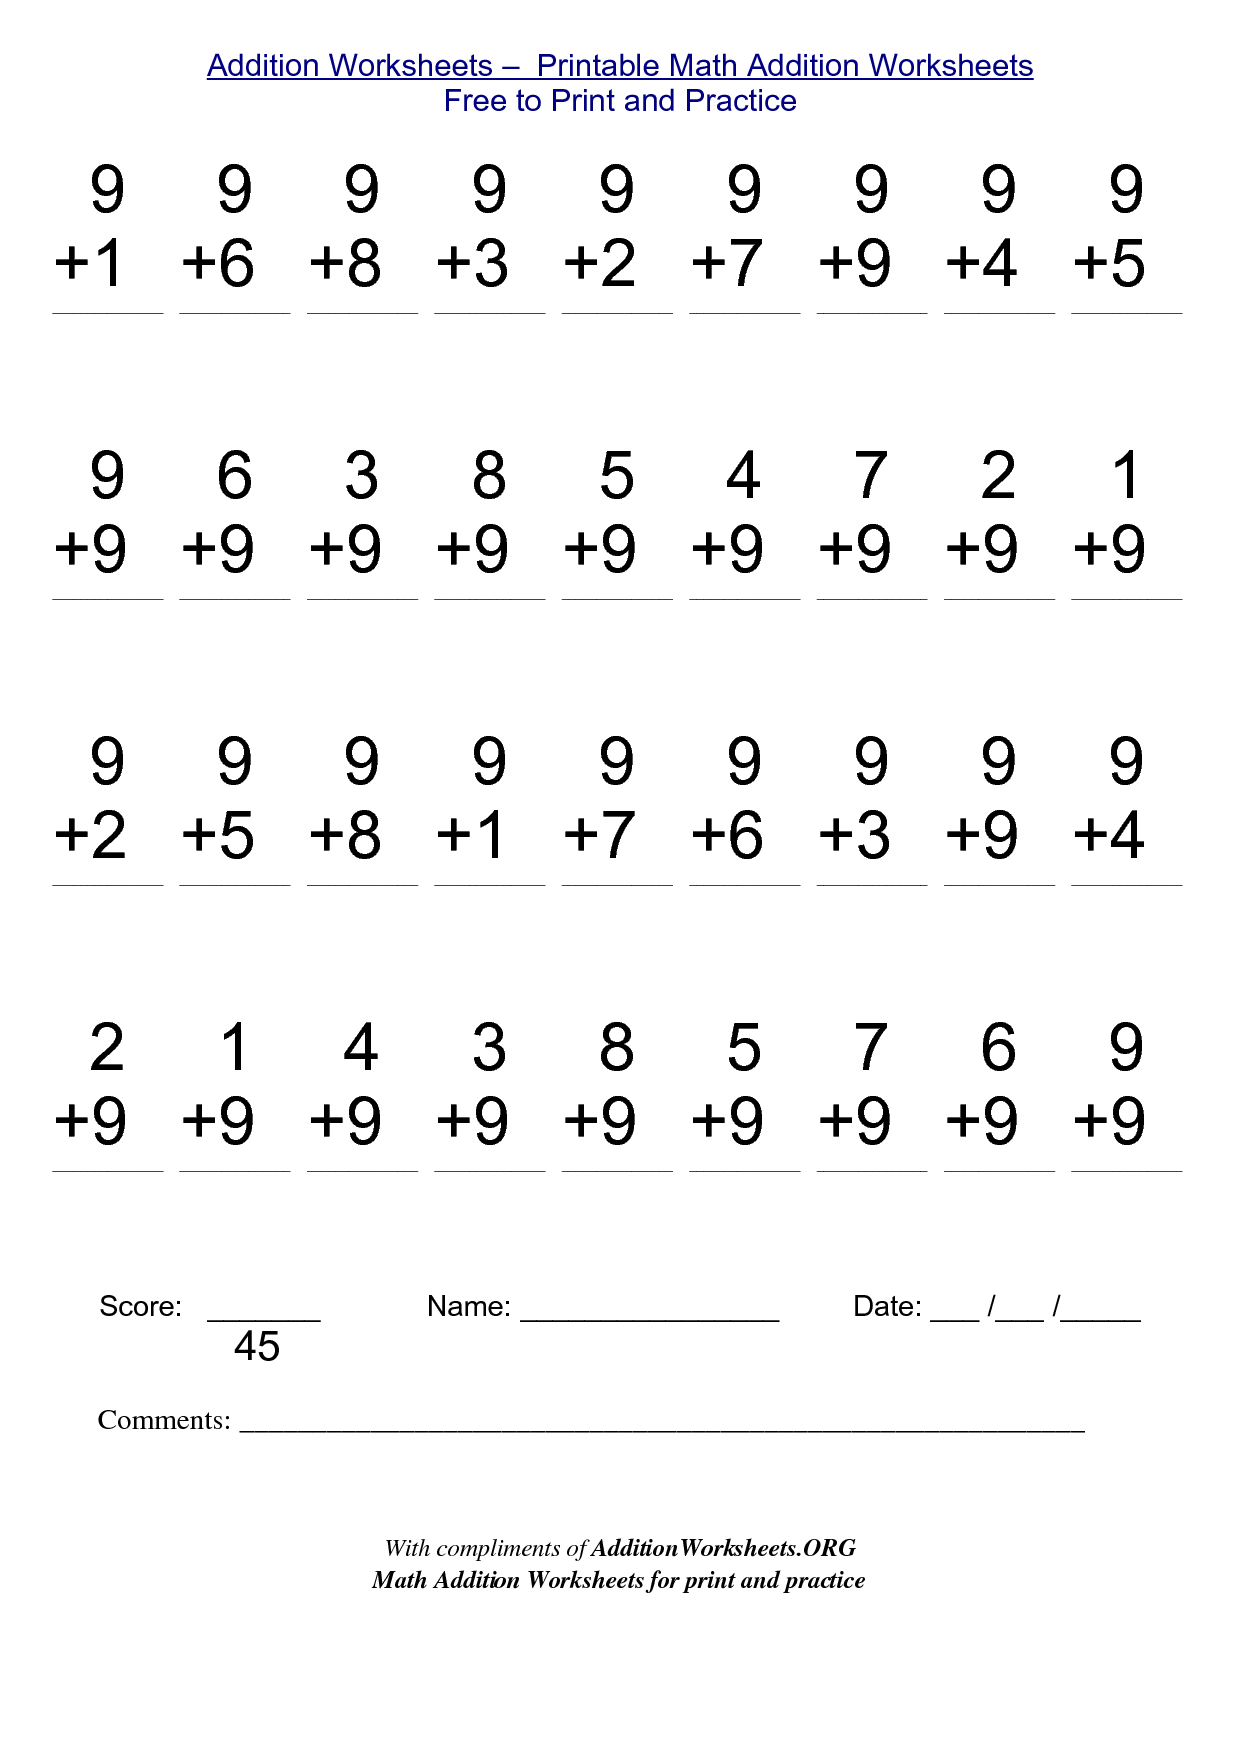 Worksheets Free Printable Worksheets For 2nd Grade 2nd grade stuff to print addition worksheets printable math free print